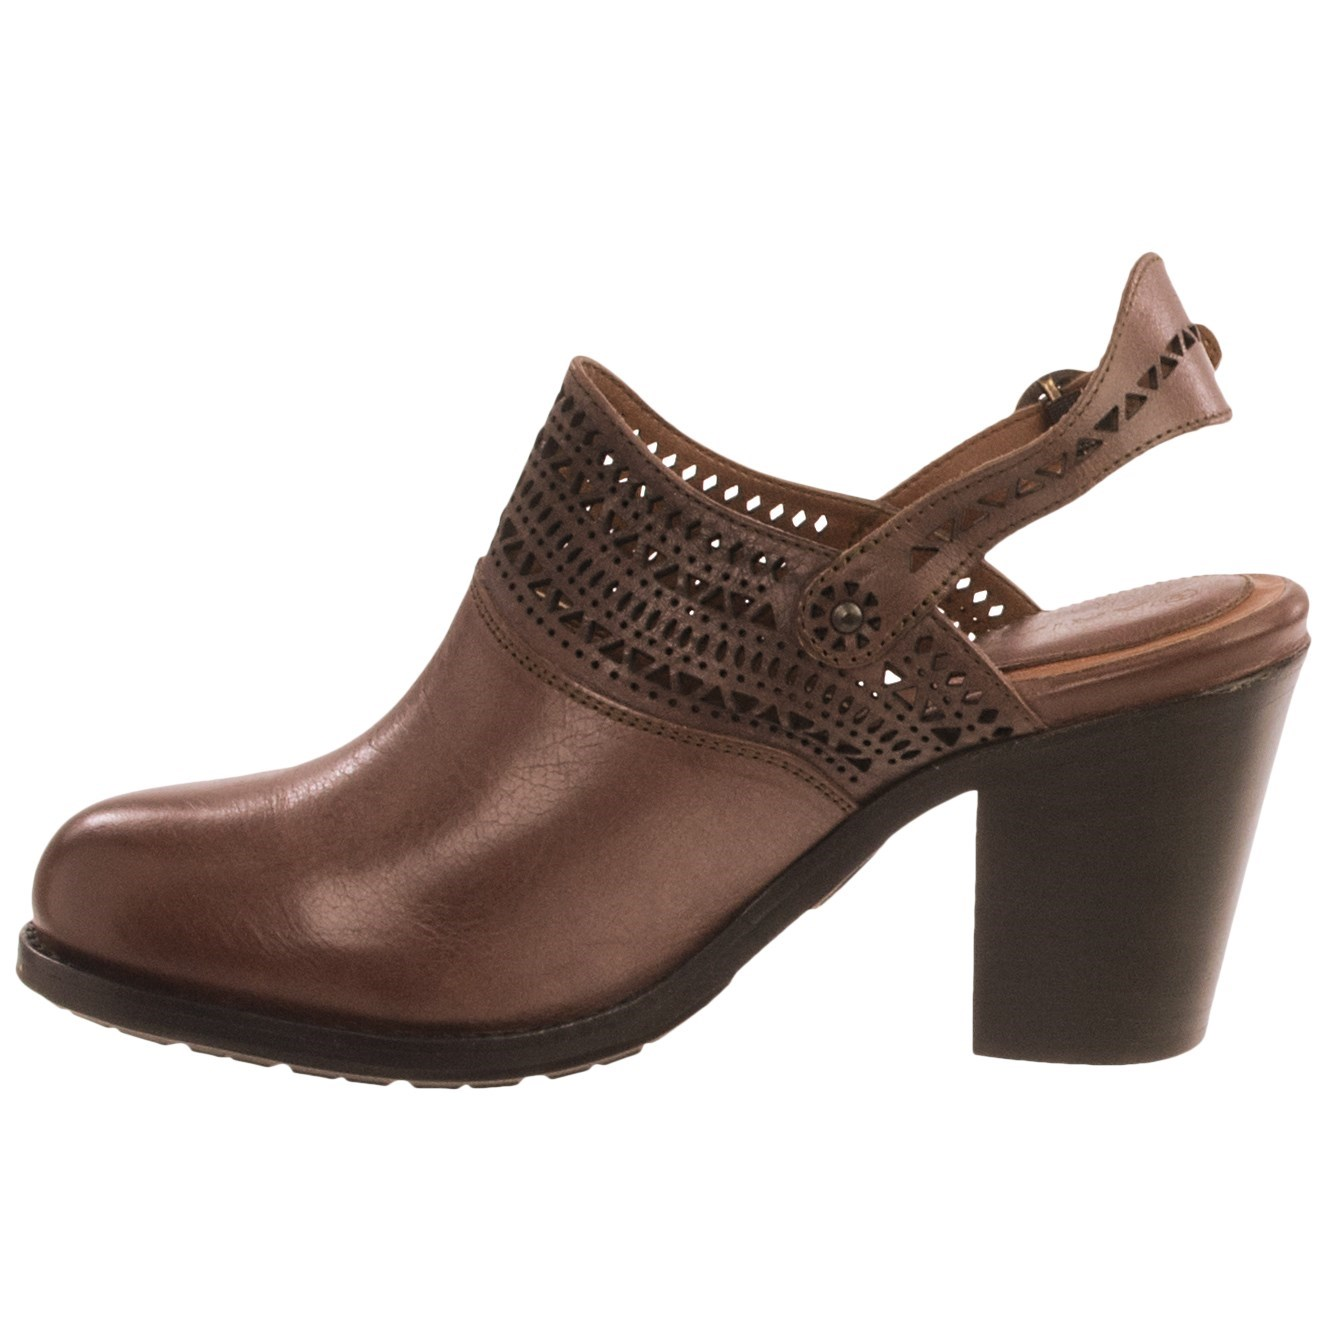 muleshoe women Shop brash beth women's espadrille mule shoe at payless to find the lowest prices on women's mule shoes free shipping +$25, free returns at any payless store.